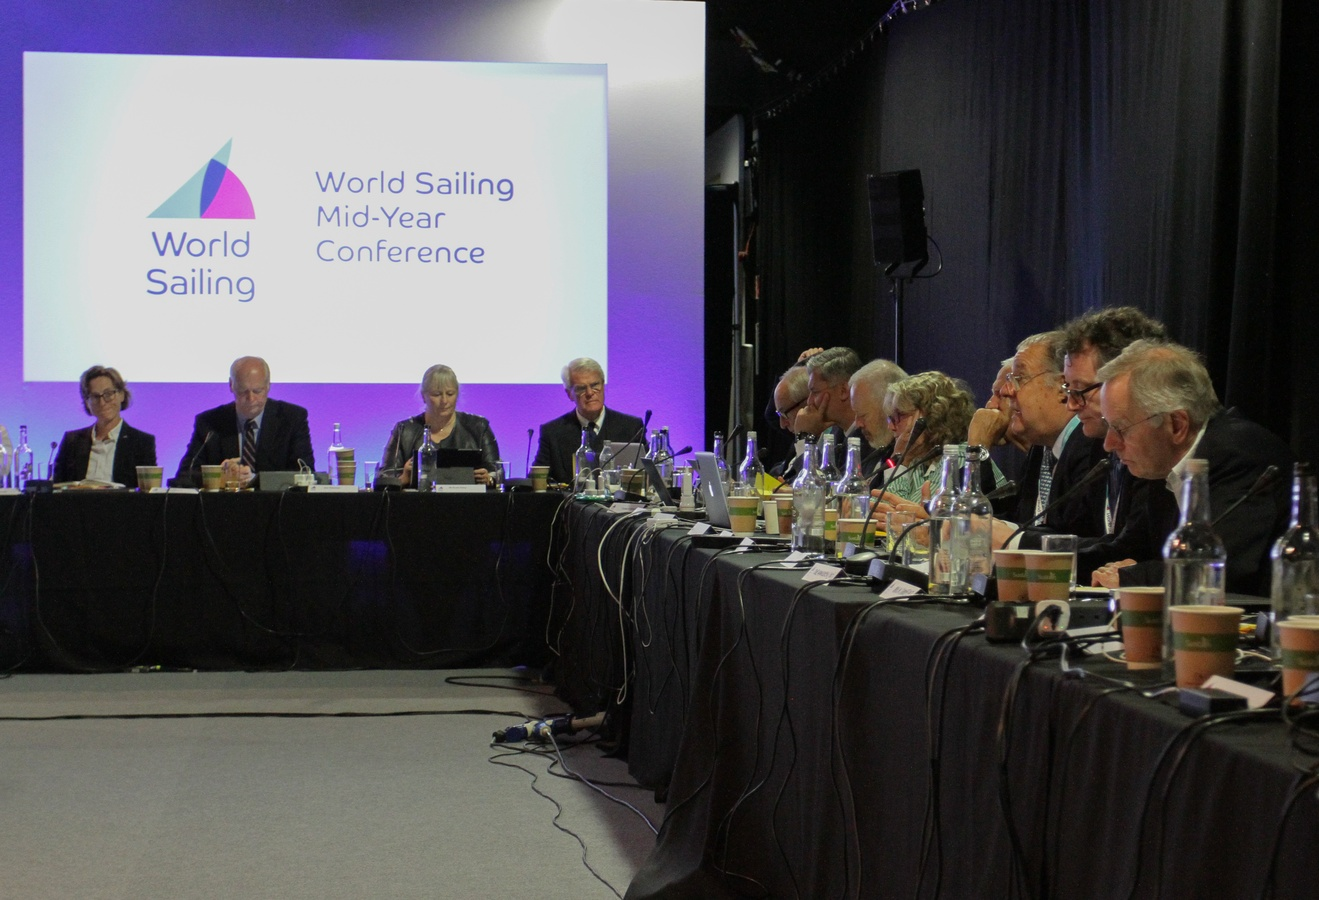 Paris 2024 decisions made at World Sailing's 2019 Mid-Year Meeting